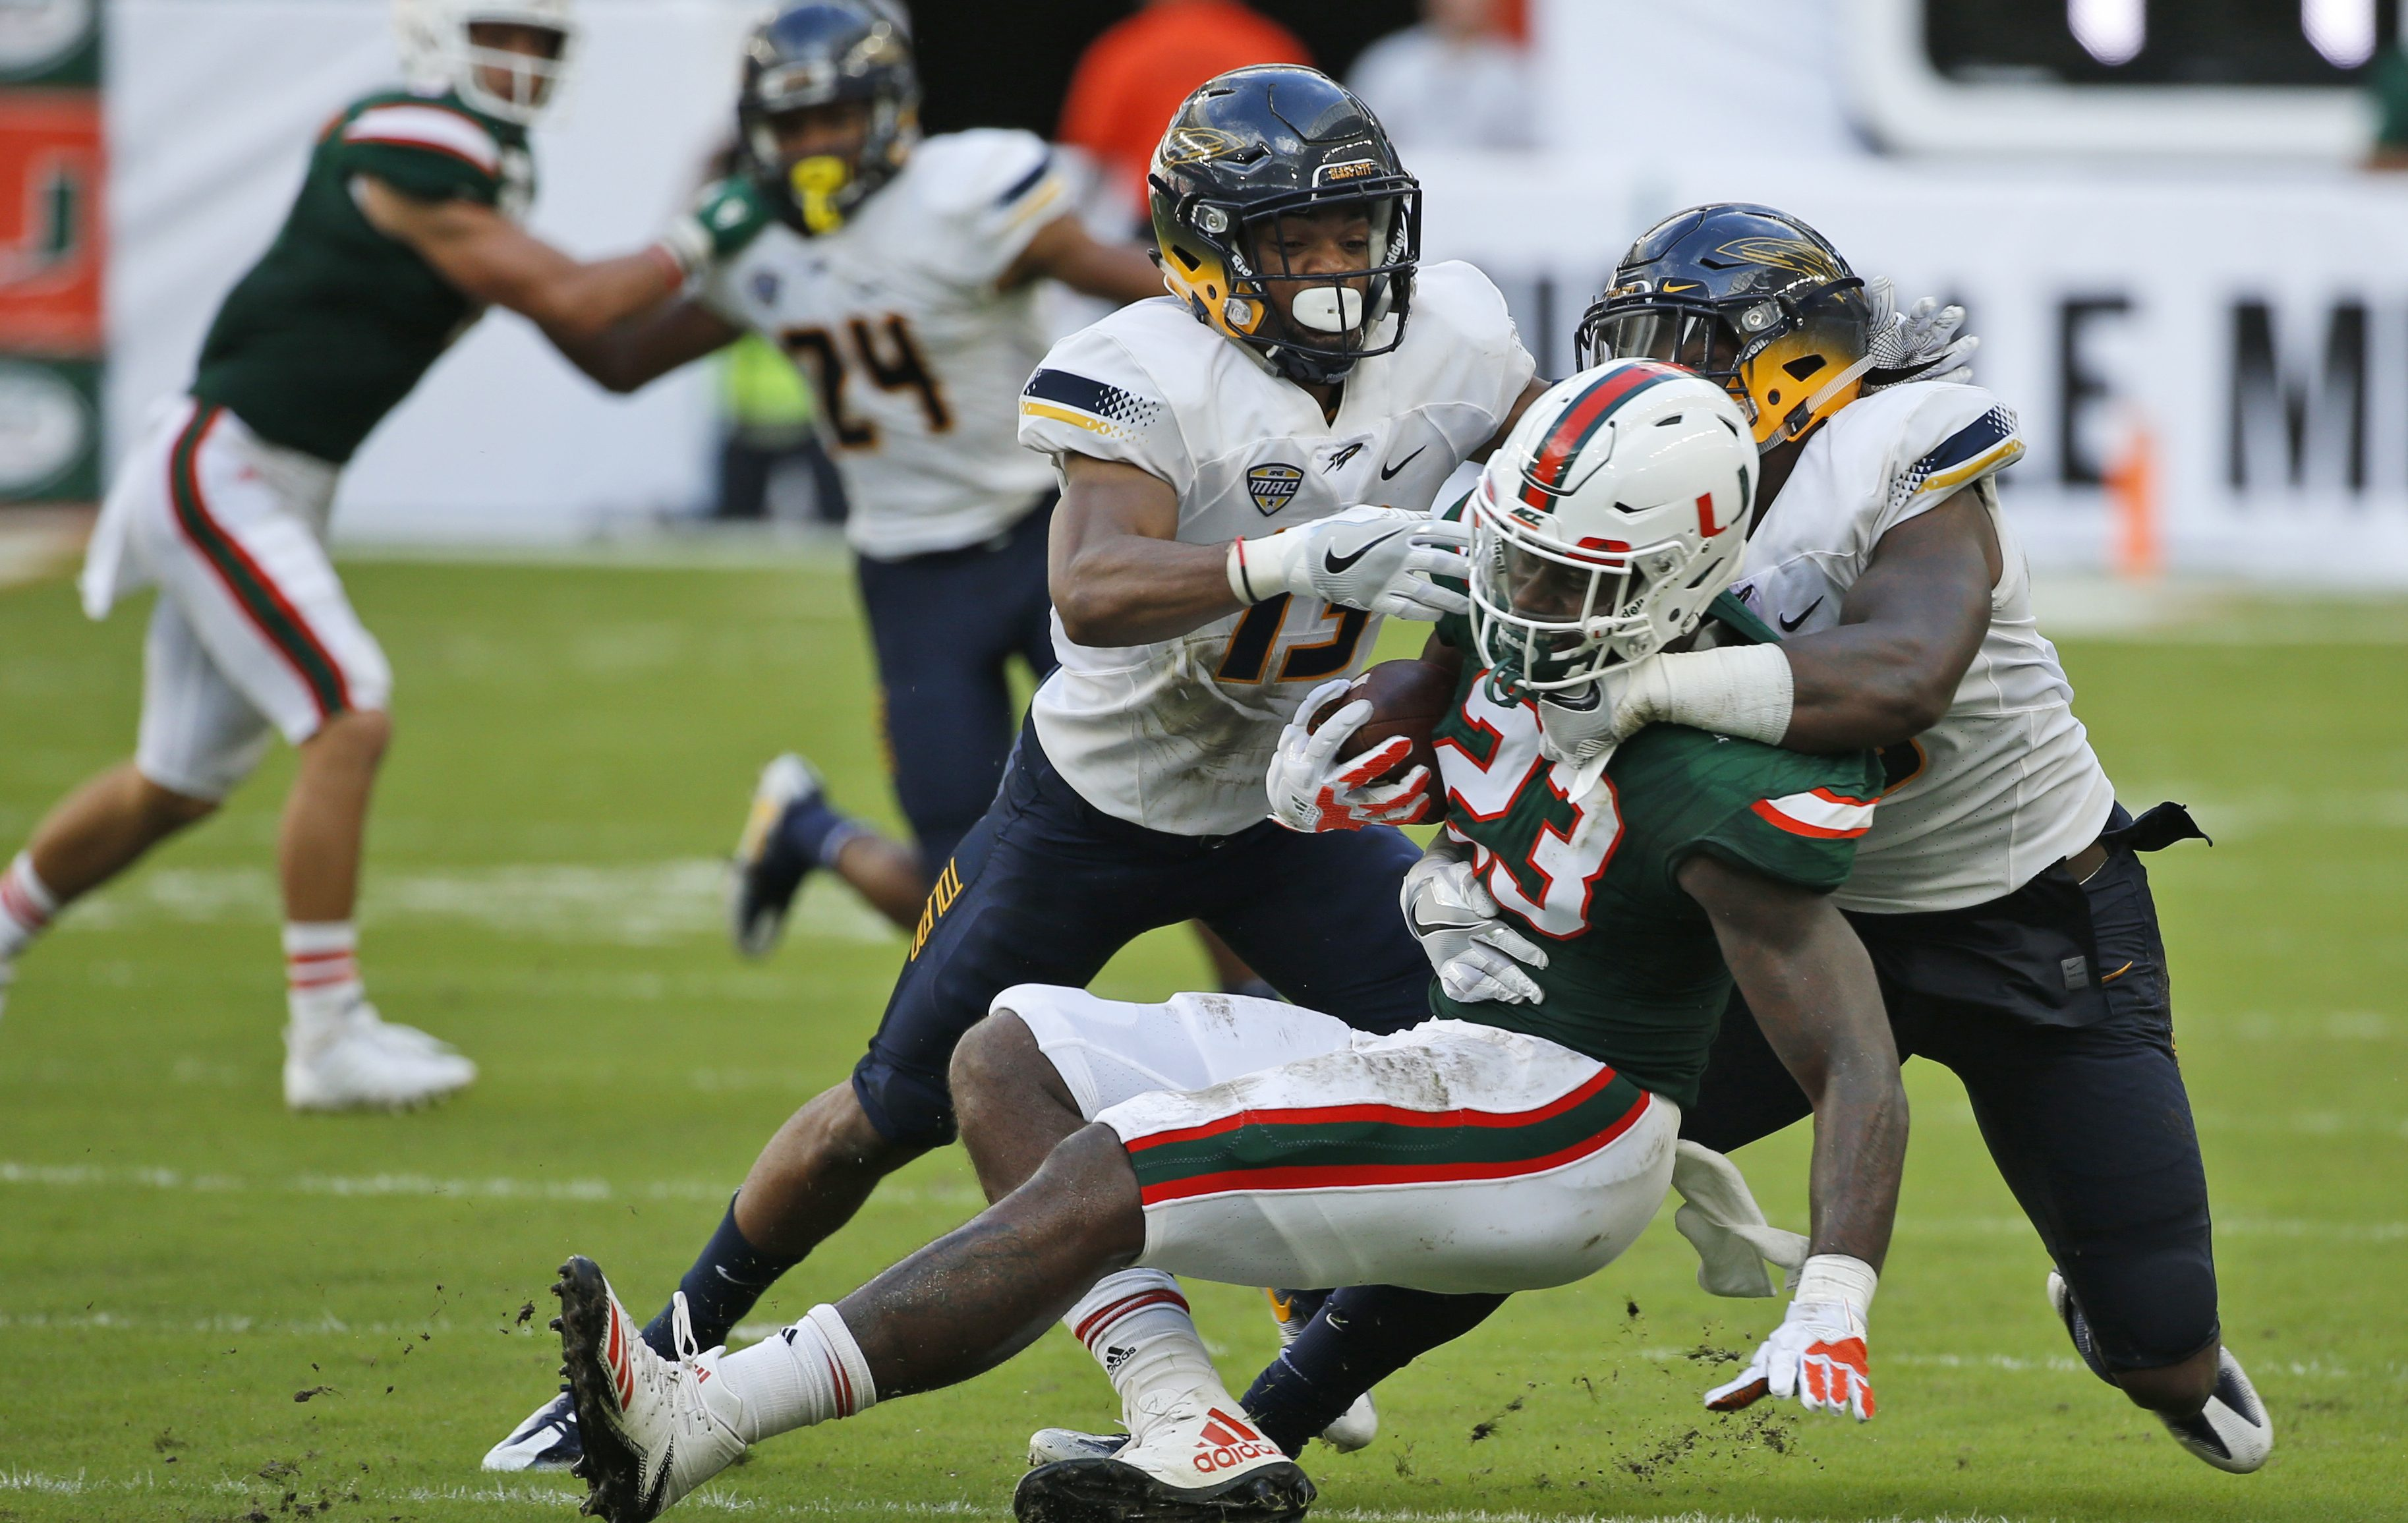 Toledo defensive back Ka´dar Hollman, left, and linebacker Ja´Wuan Woodley, right, take down Miami tight end Christopher Herndon IV (23) during the first half of an NCAA College football game, Saturday, Sept. 23, 2017 in Miami Gardens, Fla. (AP Photo/Wilfredo Lee)